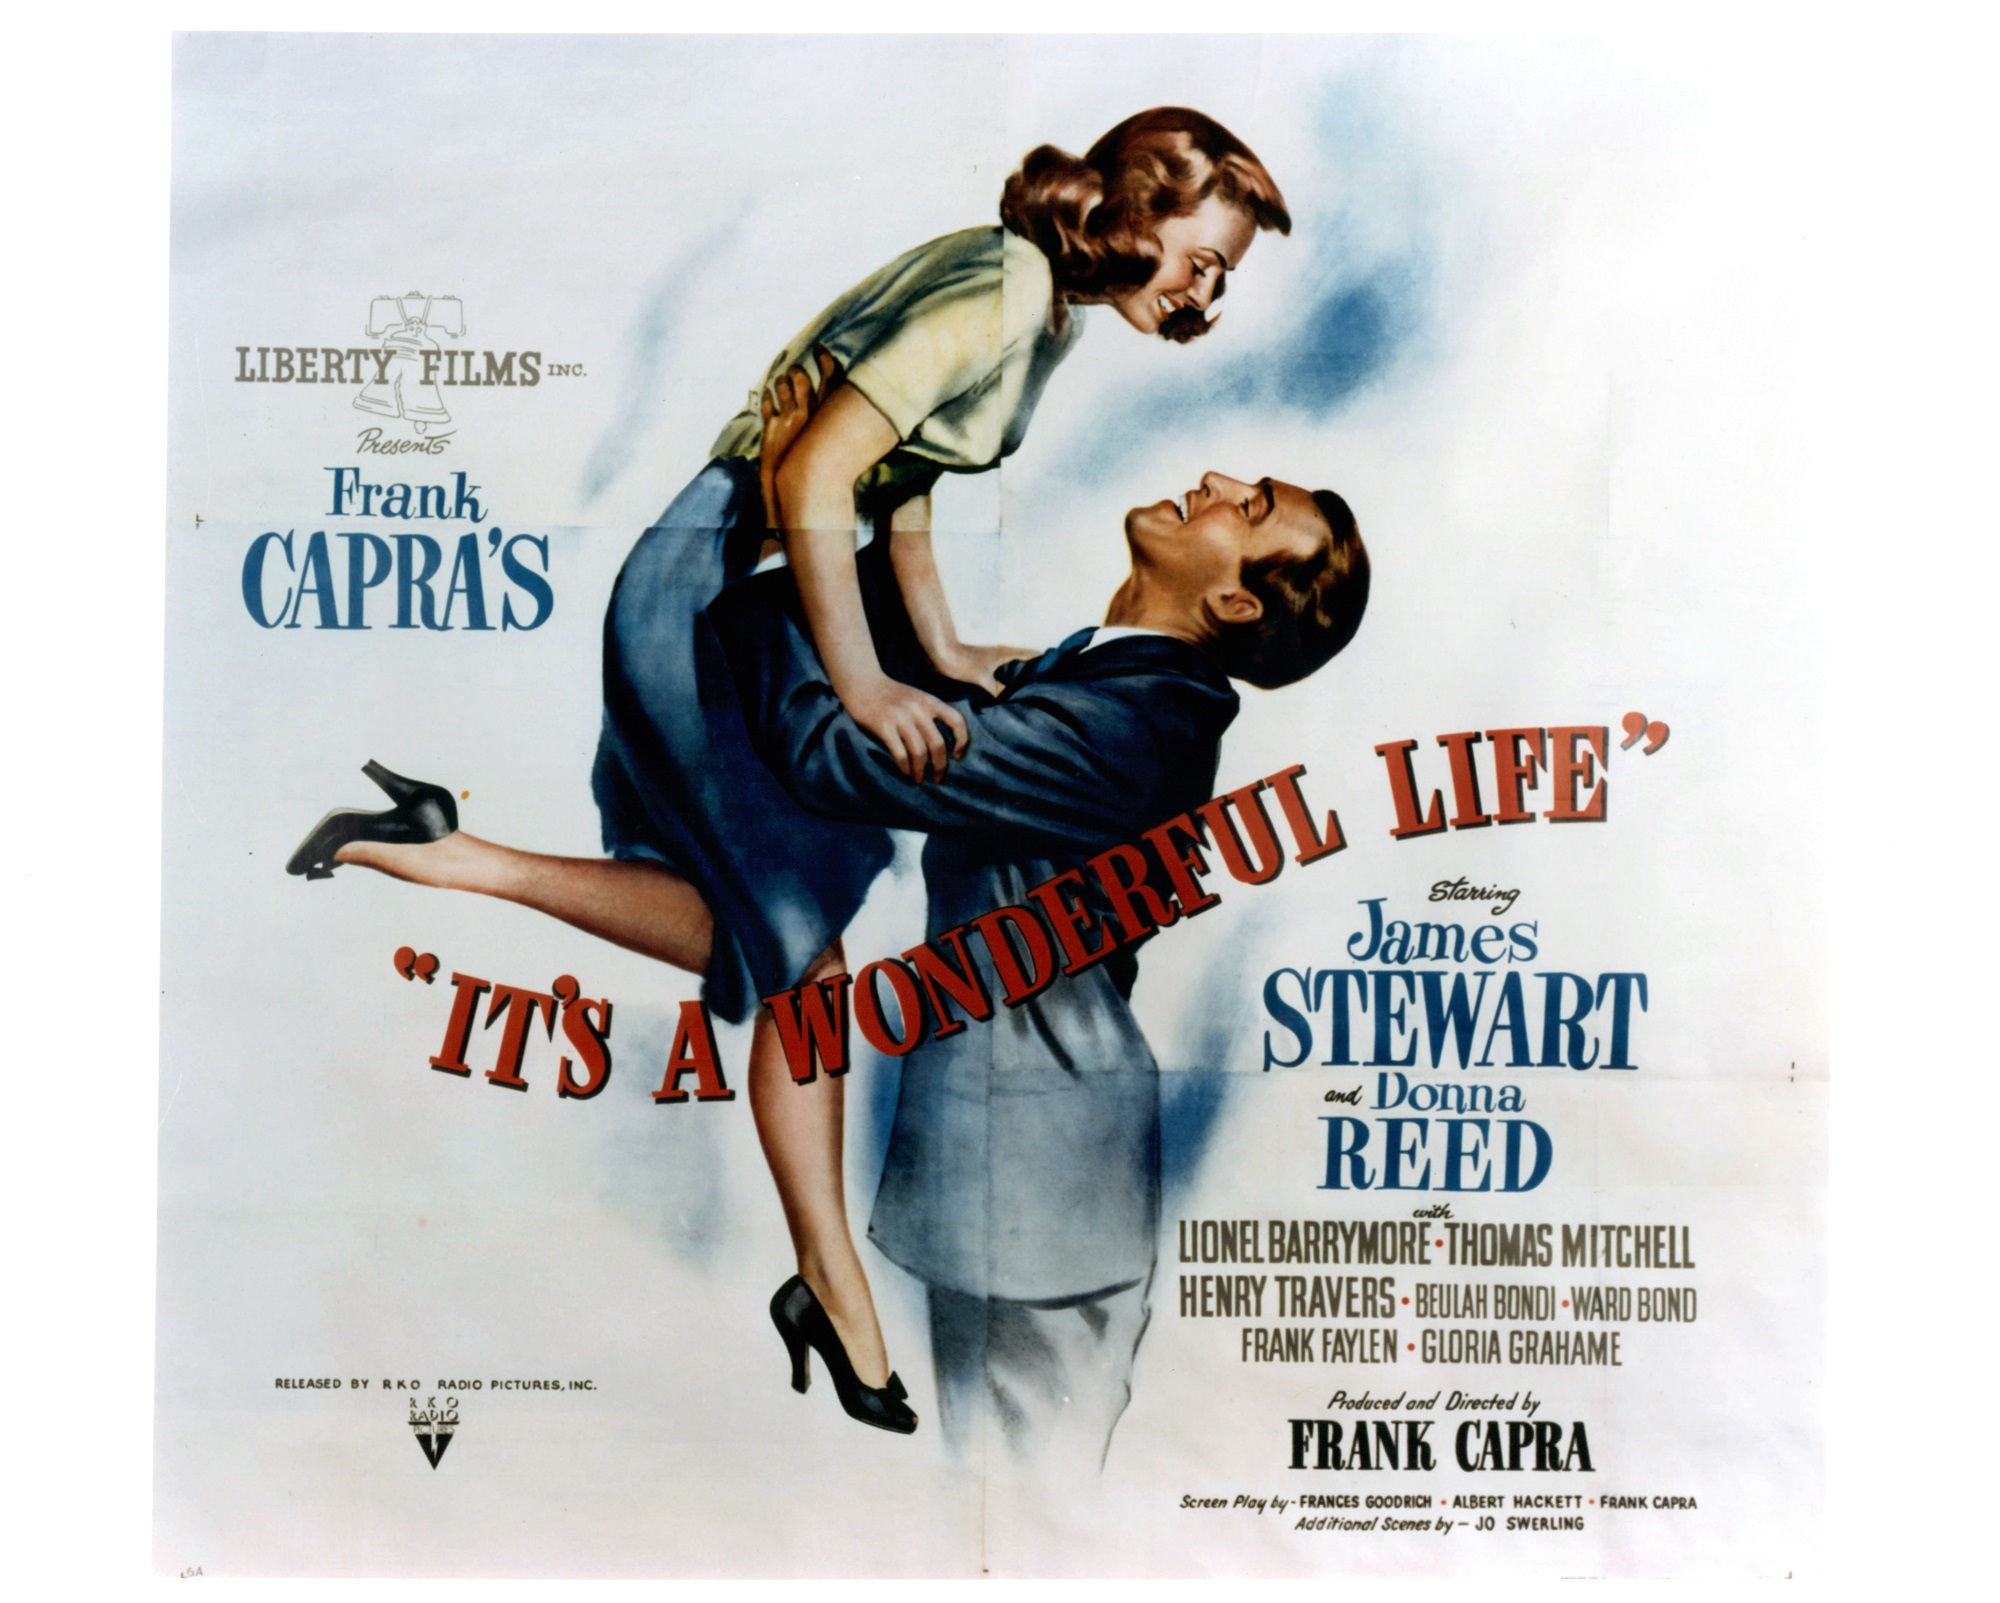 Donna Reed is lifted by James Stewart in movie art for the film It's A Wonderful Life